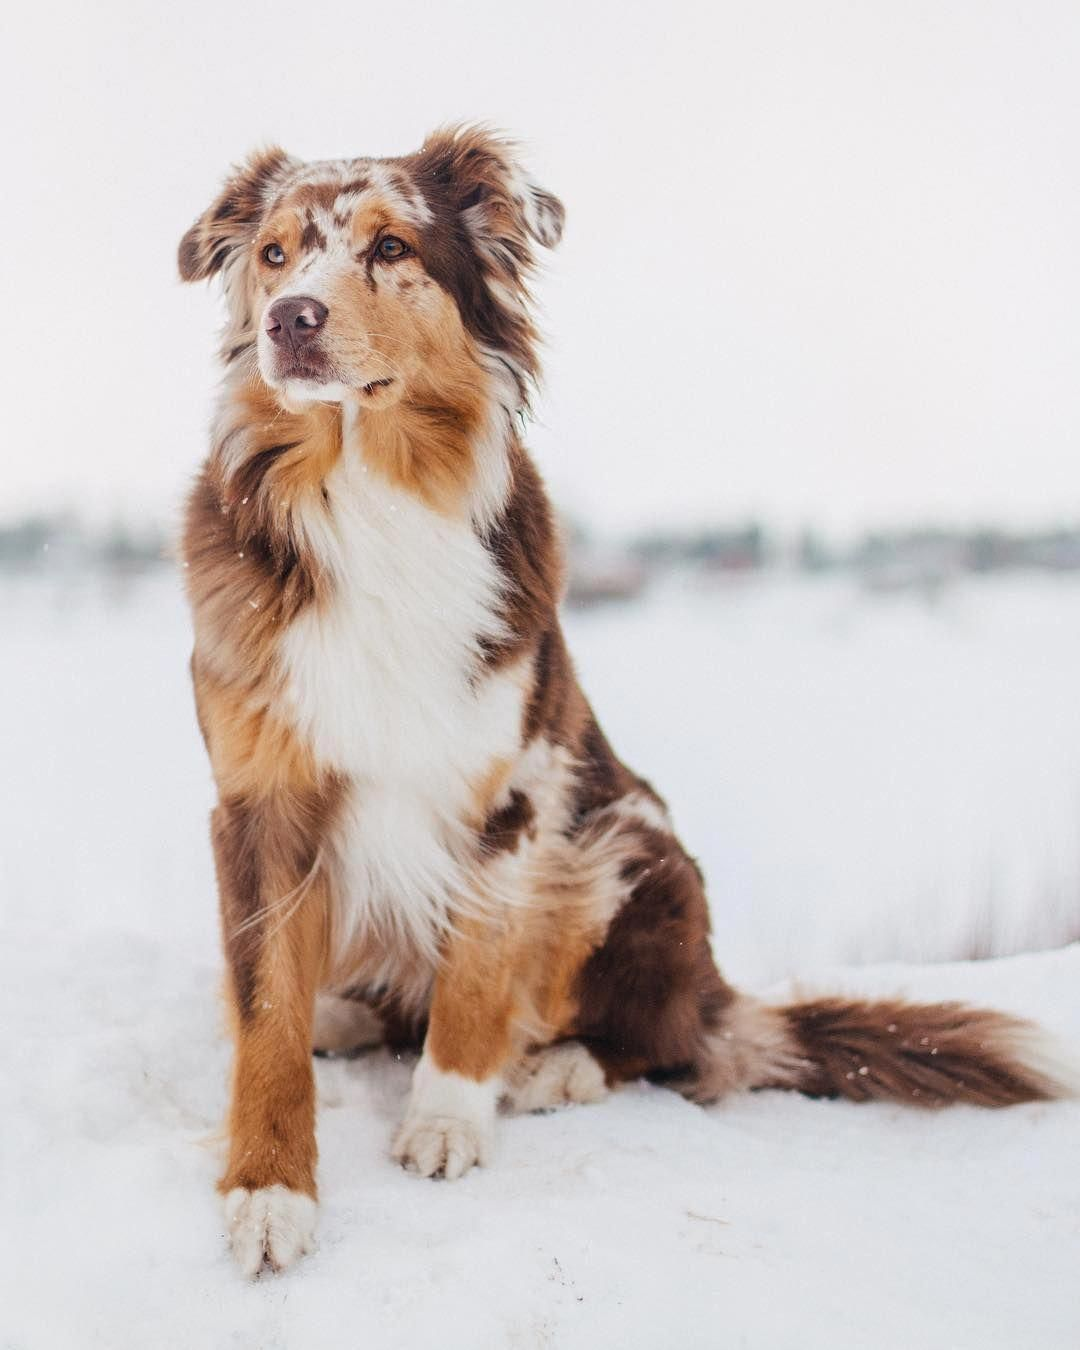 Australian Shepherd Smart Working Dog Shepherd Dog Breeds Australian Shepherd Dogs Dog Breeds